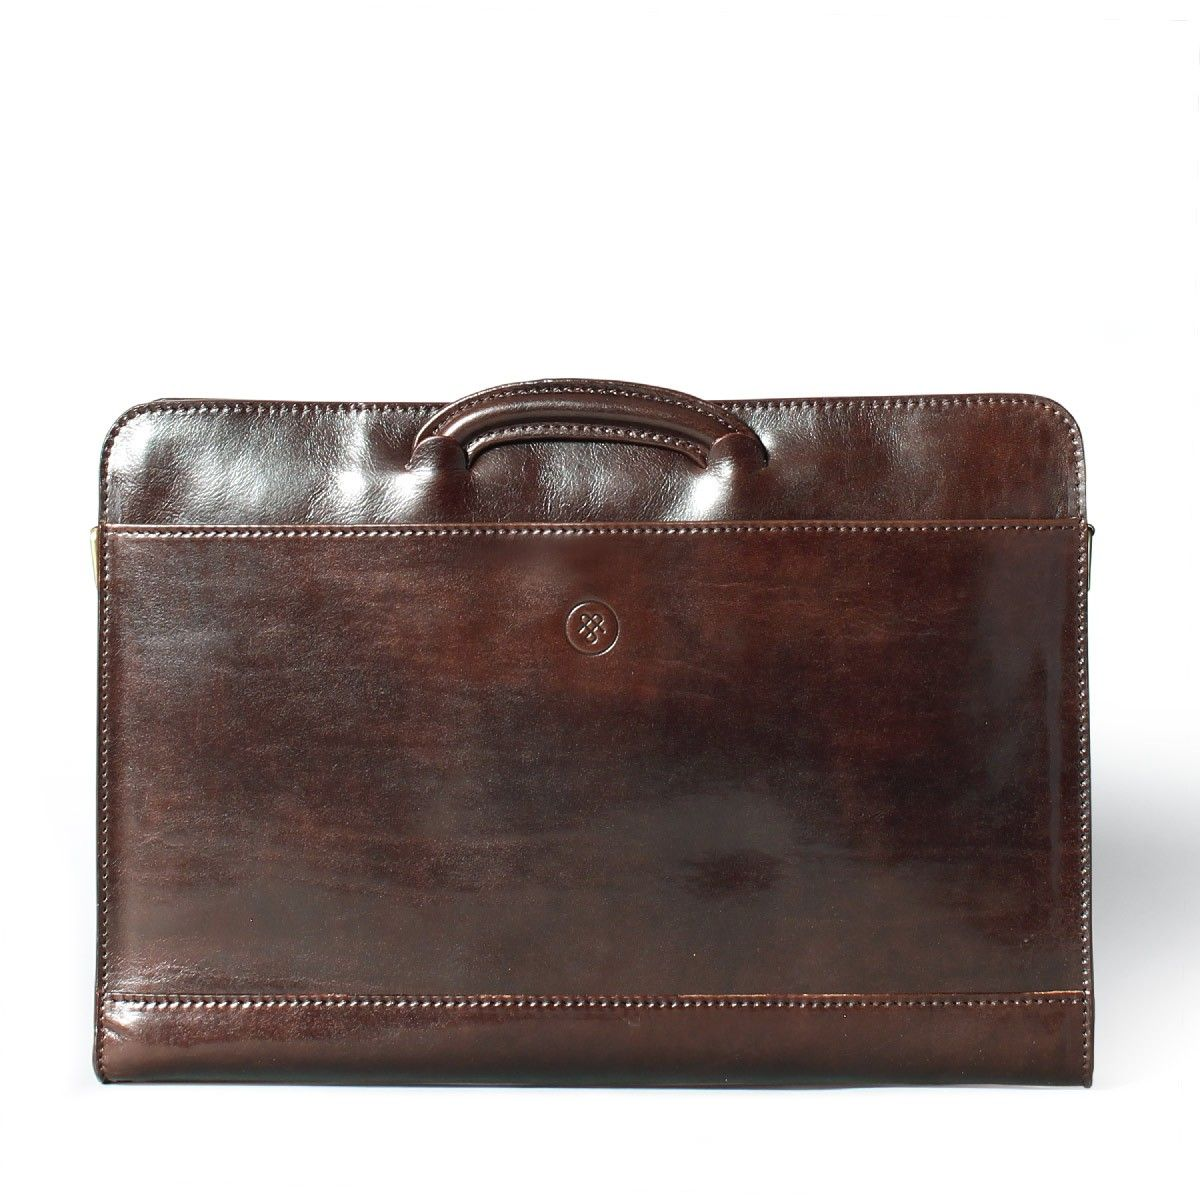 The Barolo - Leather Document Case for Men